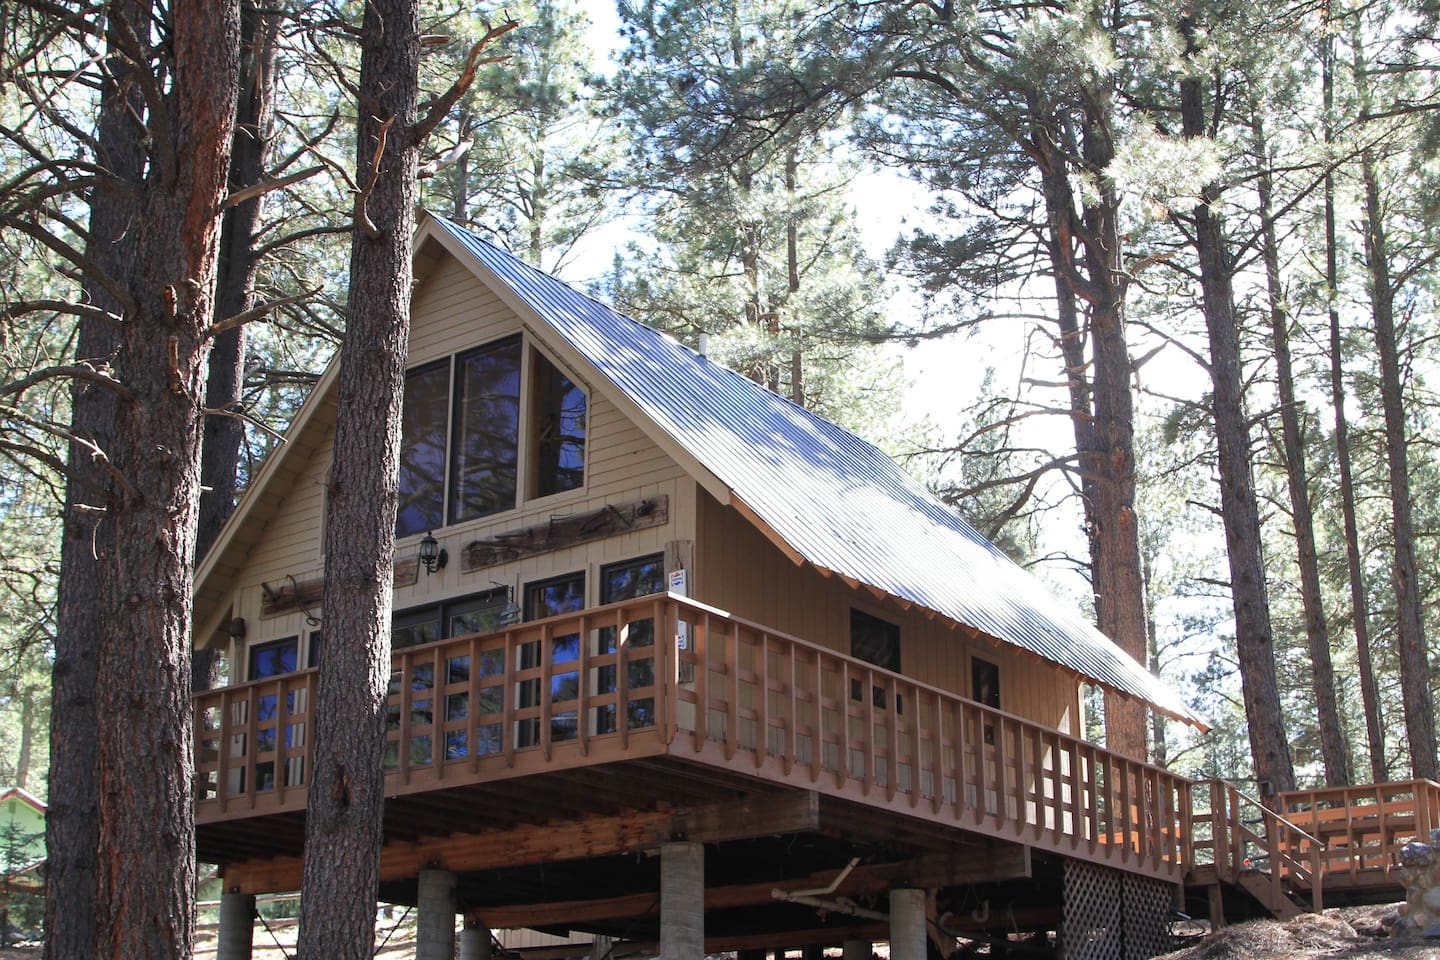 of fire resort angel square vacation logo lrg new properties s cabins rentals mexico